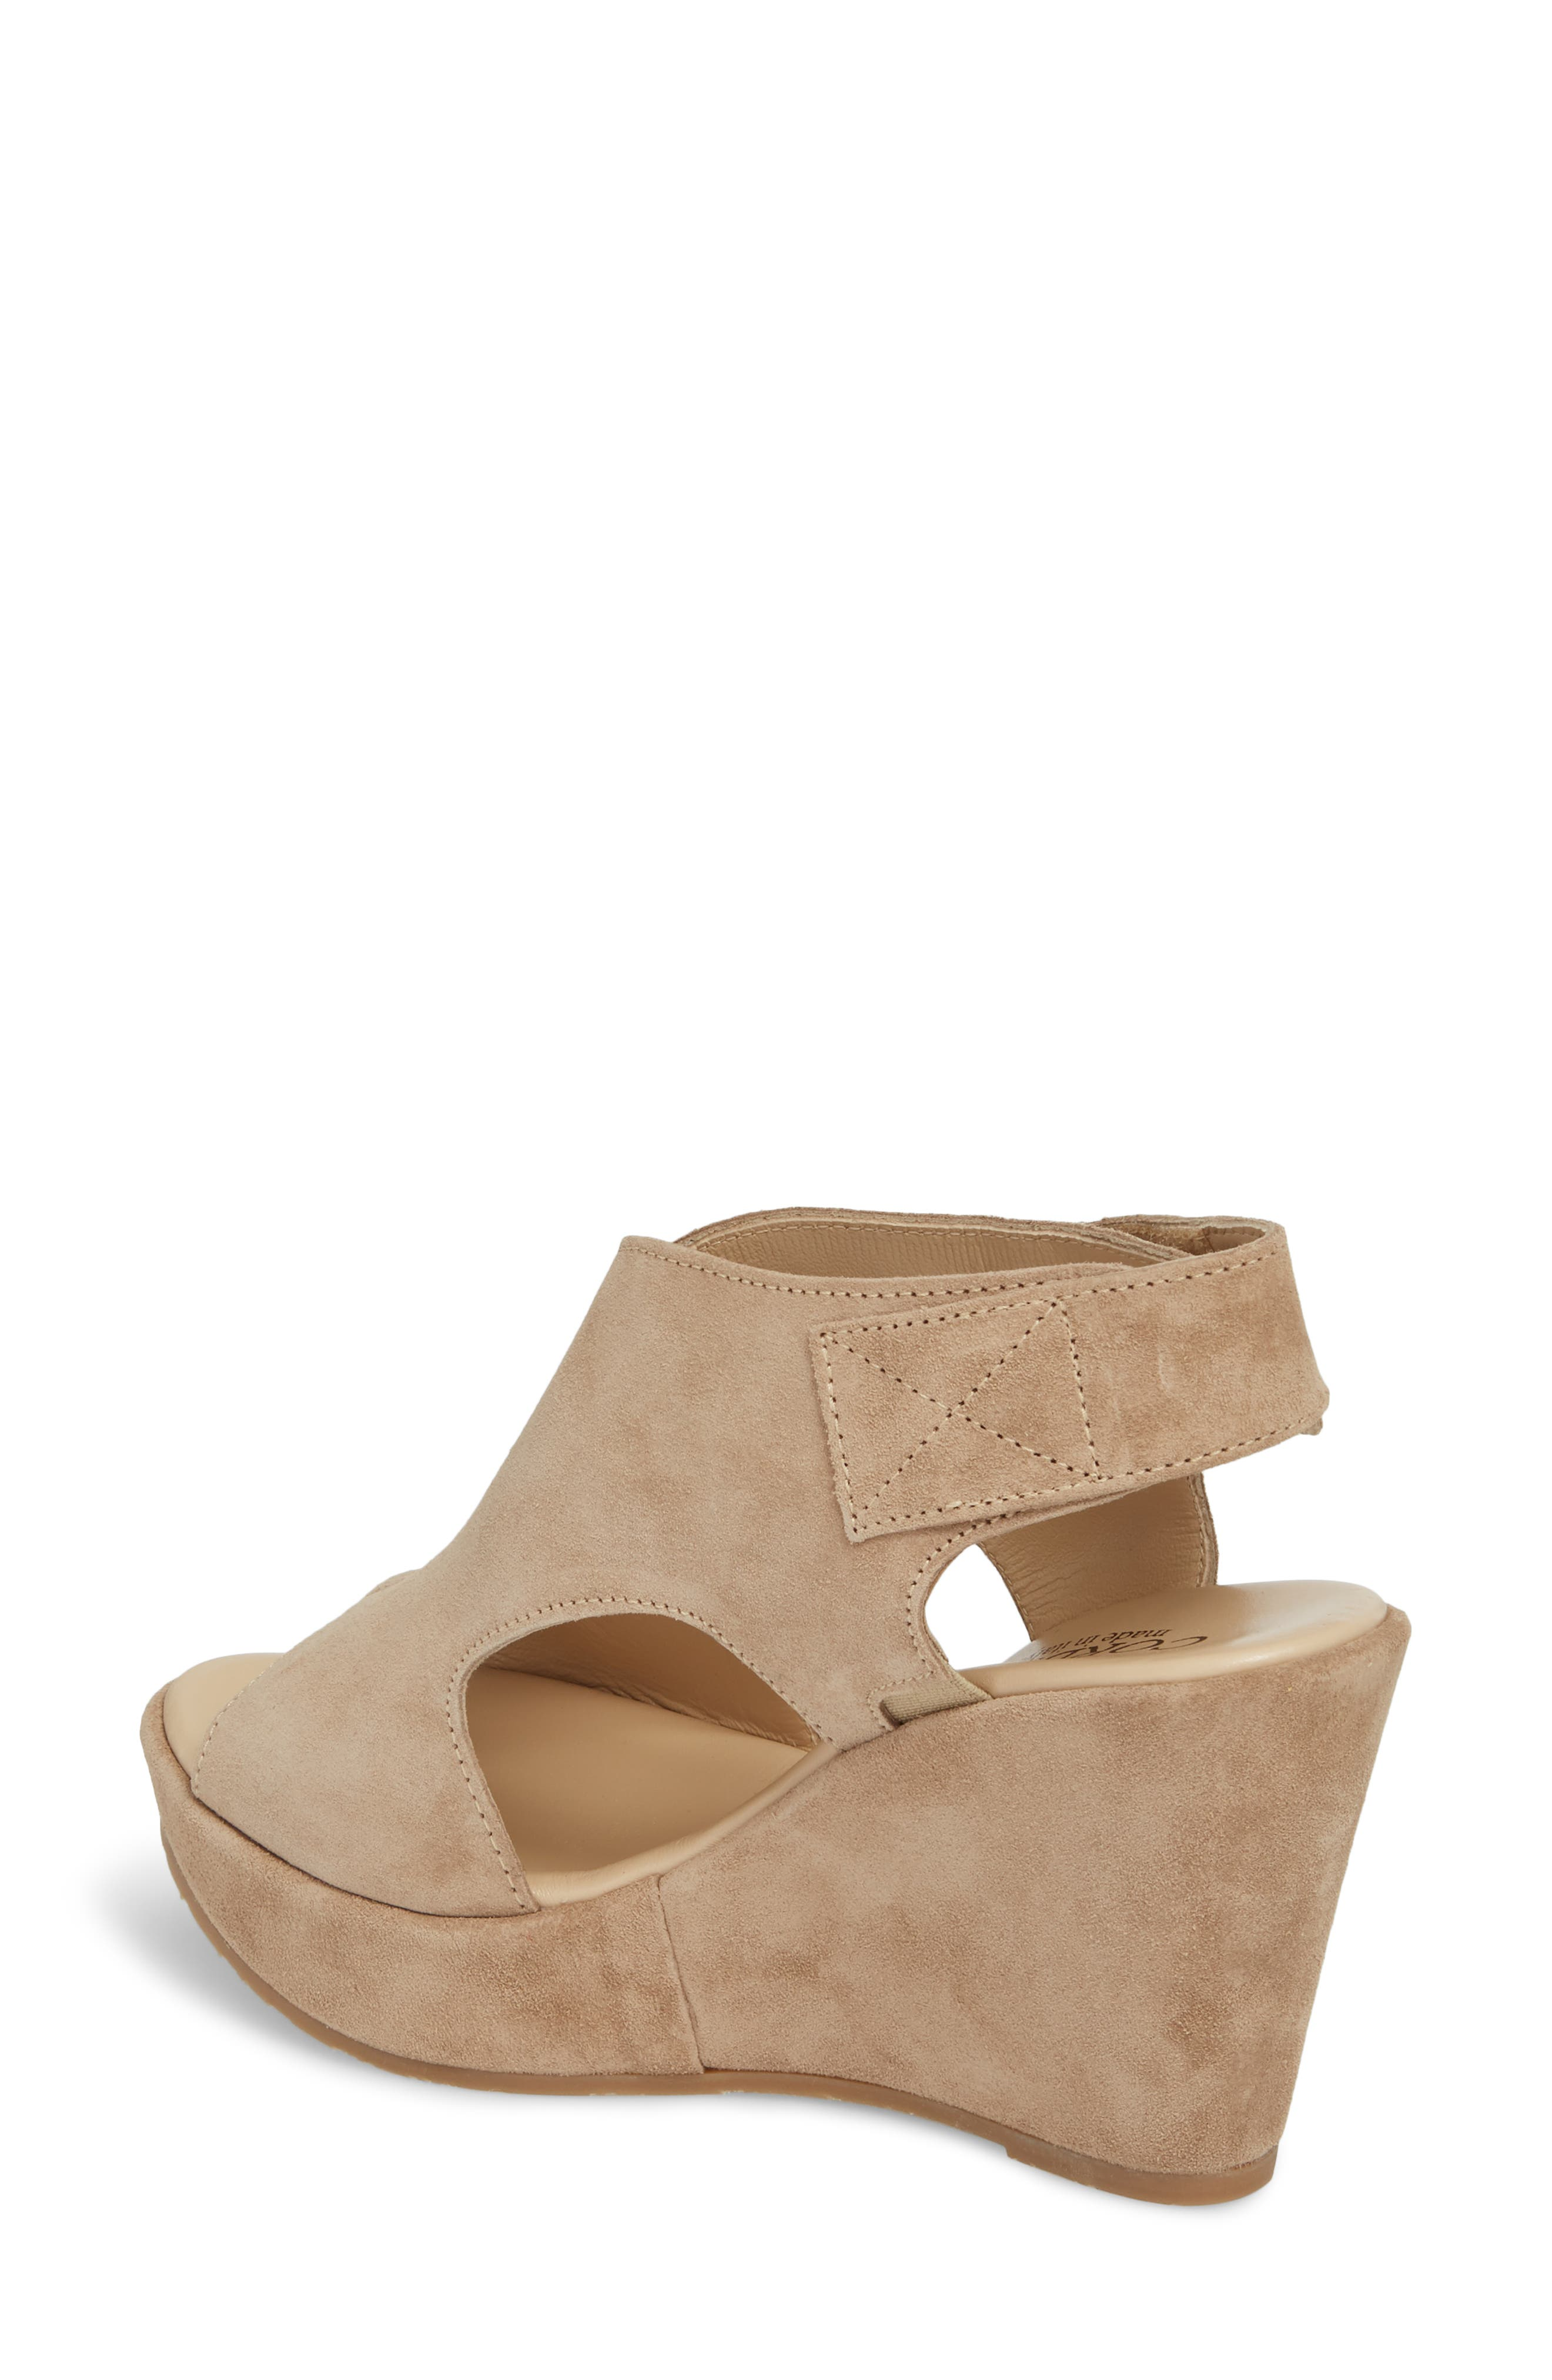 Reed Wedge Sandal,                             Alternate thumbnail 4, color,